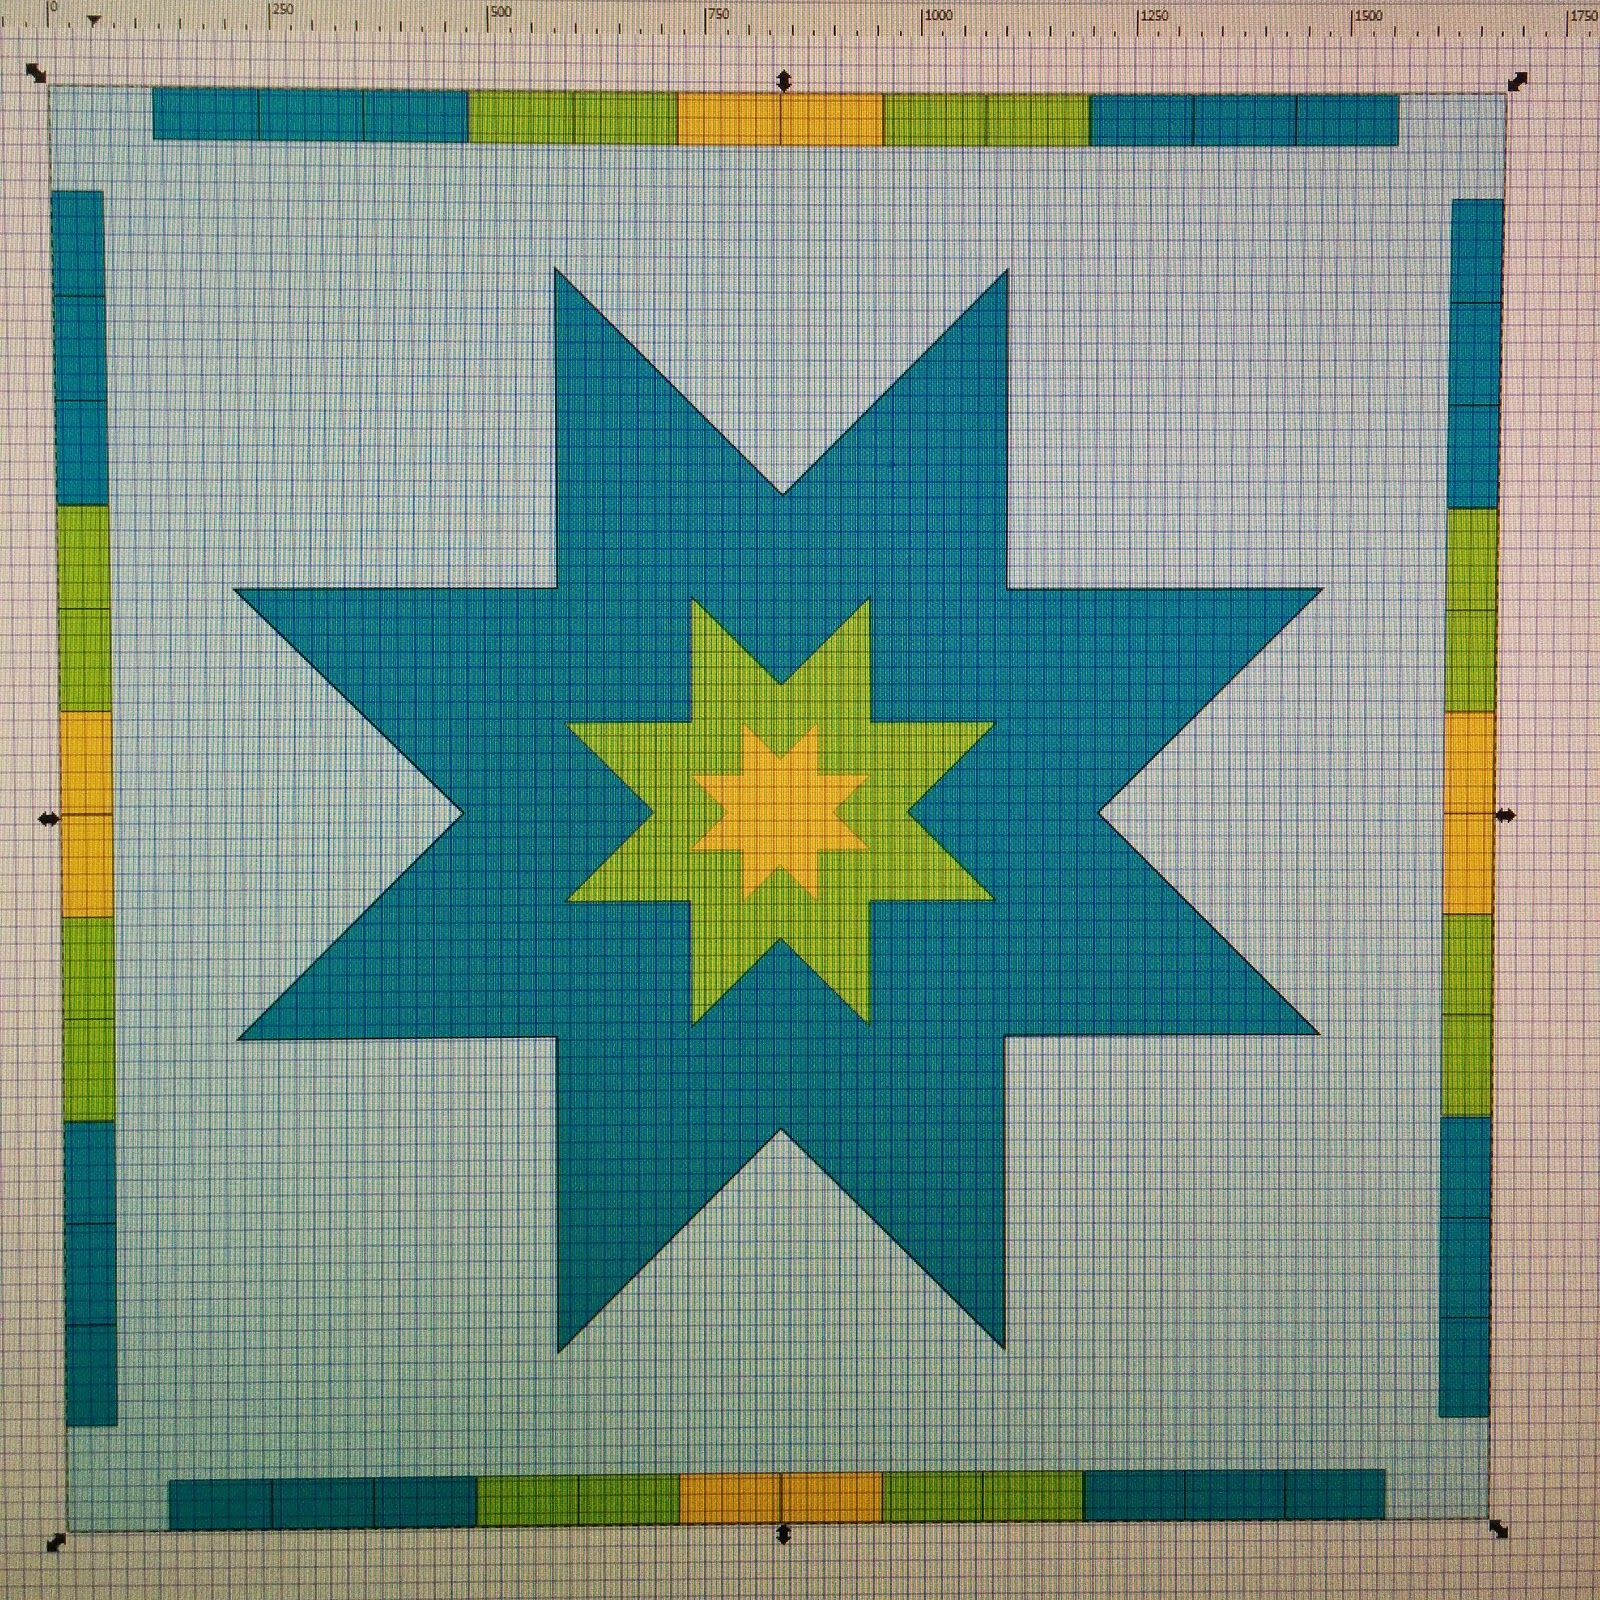 star in star wedding quilt progress 3